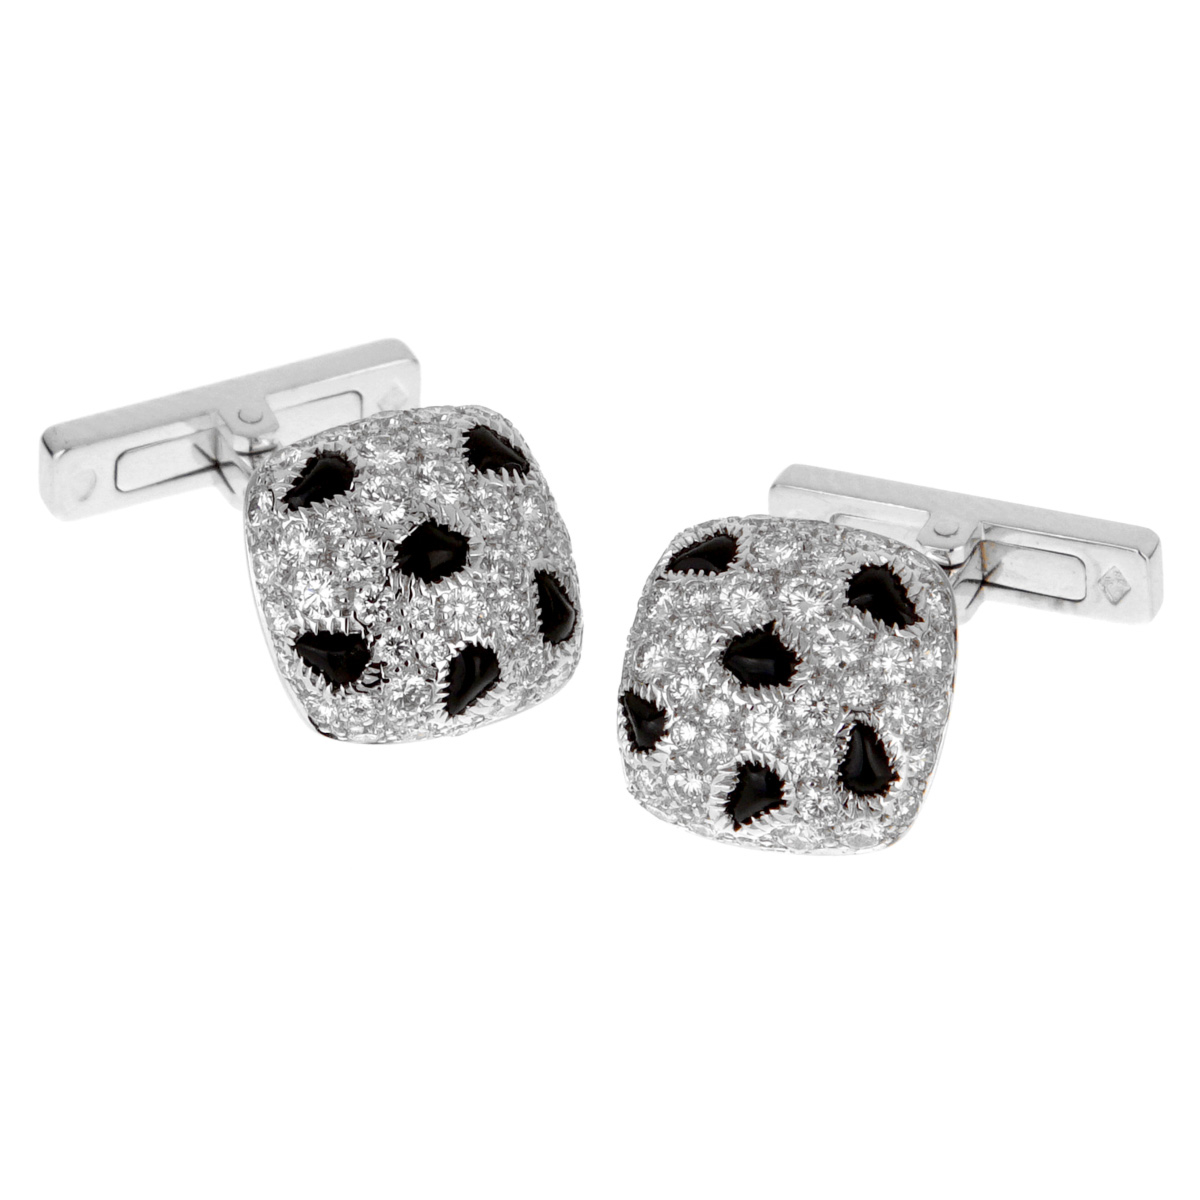 Cartier Panthere White Gold Diamond Onyx Cufflinks - Cartier Jewelry